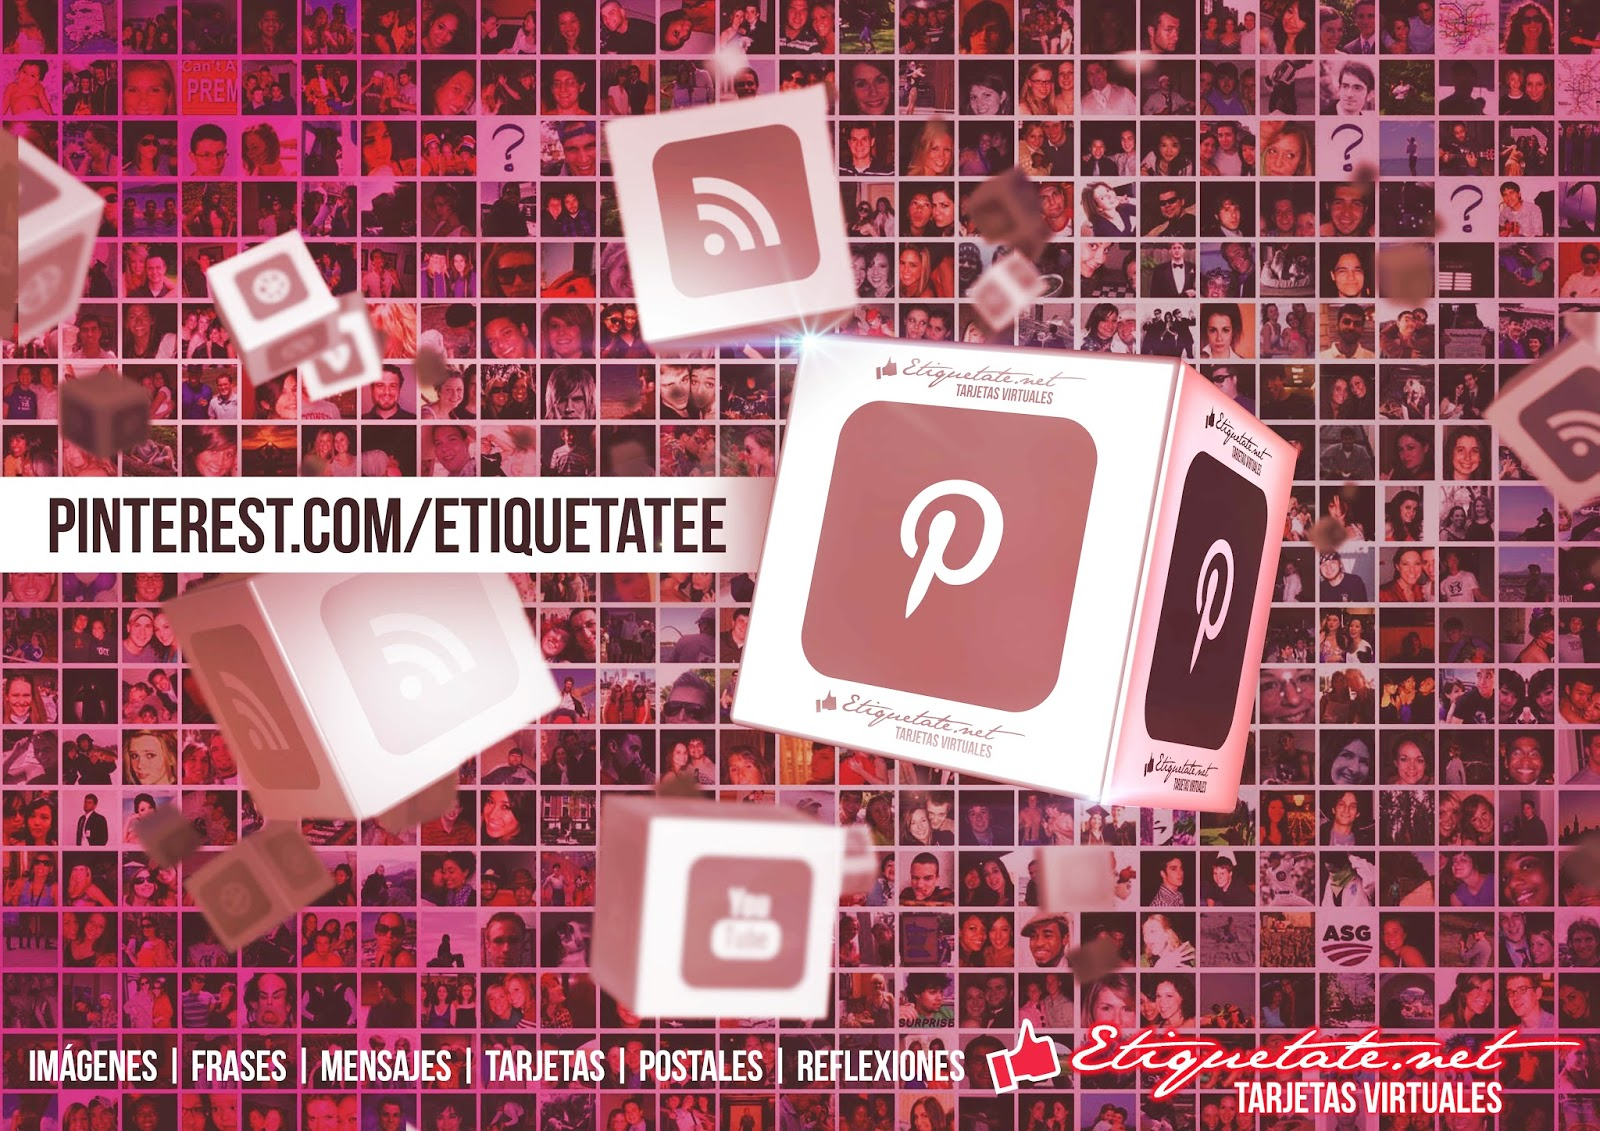 Sígue a ETIQUETATE.NET en las redes sociales .:  Twitter, Facebook, YouTube, Google+, Flickr, Instagram, Pinterest.